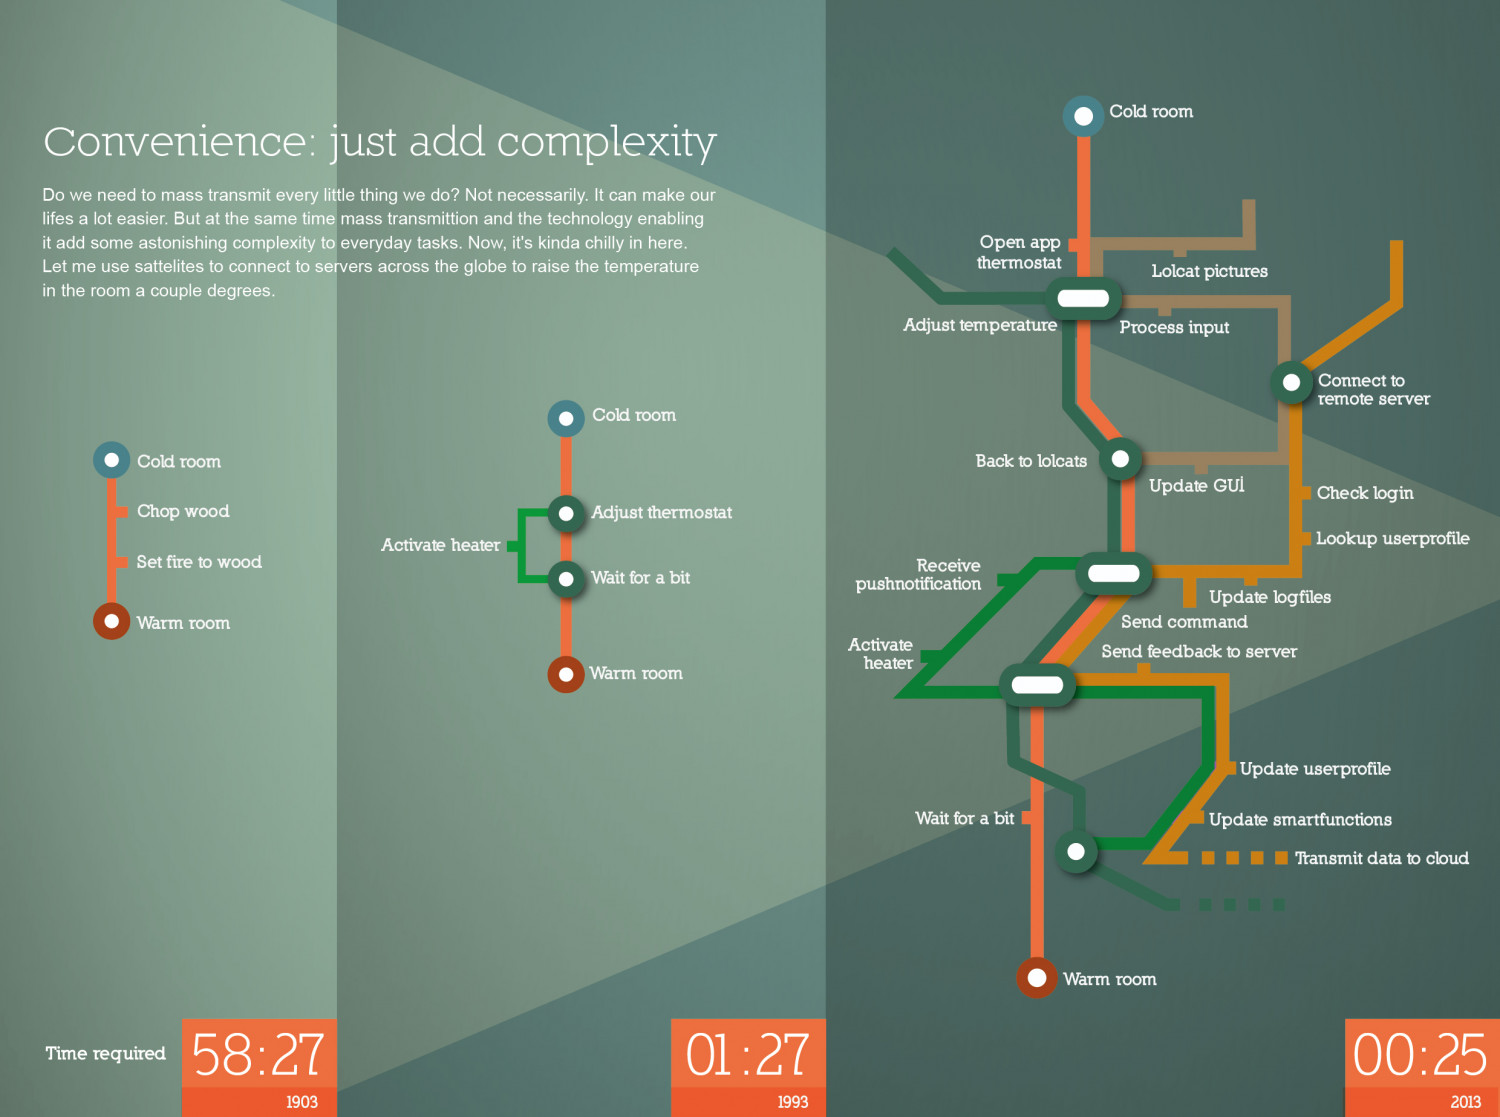 Convenience: just add complexity Infographic